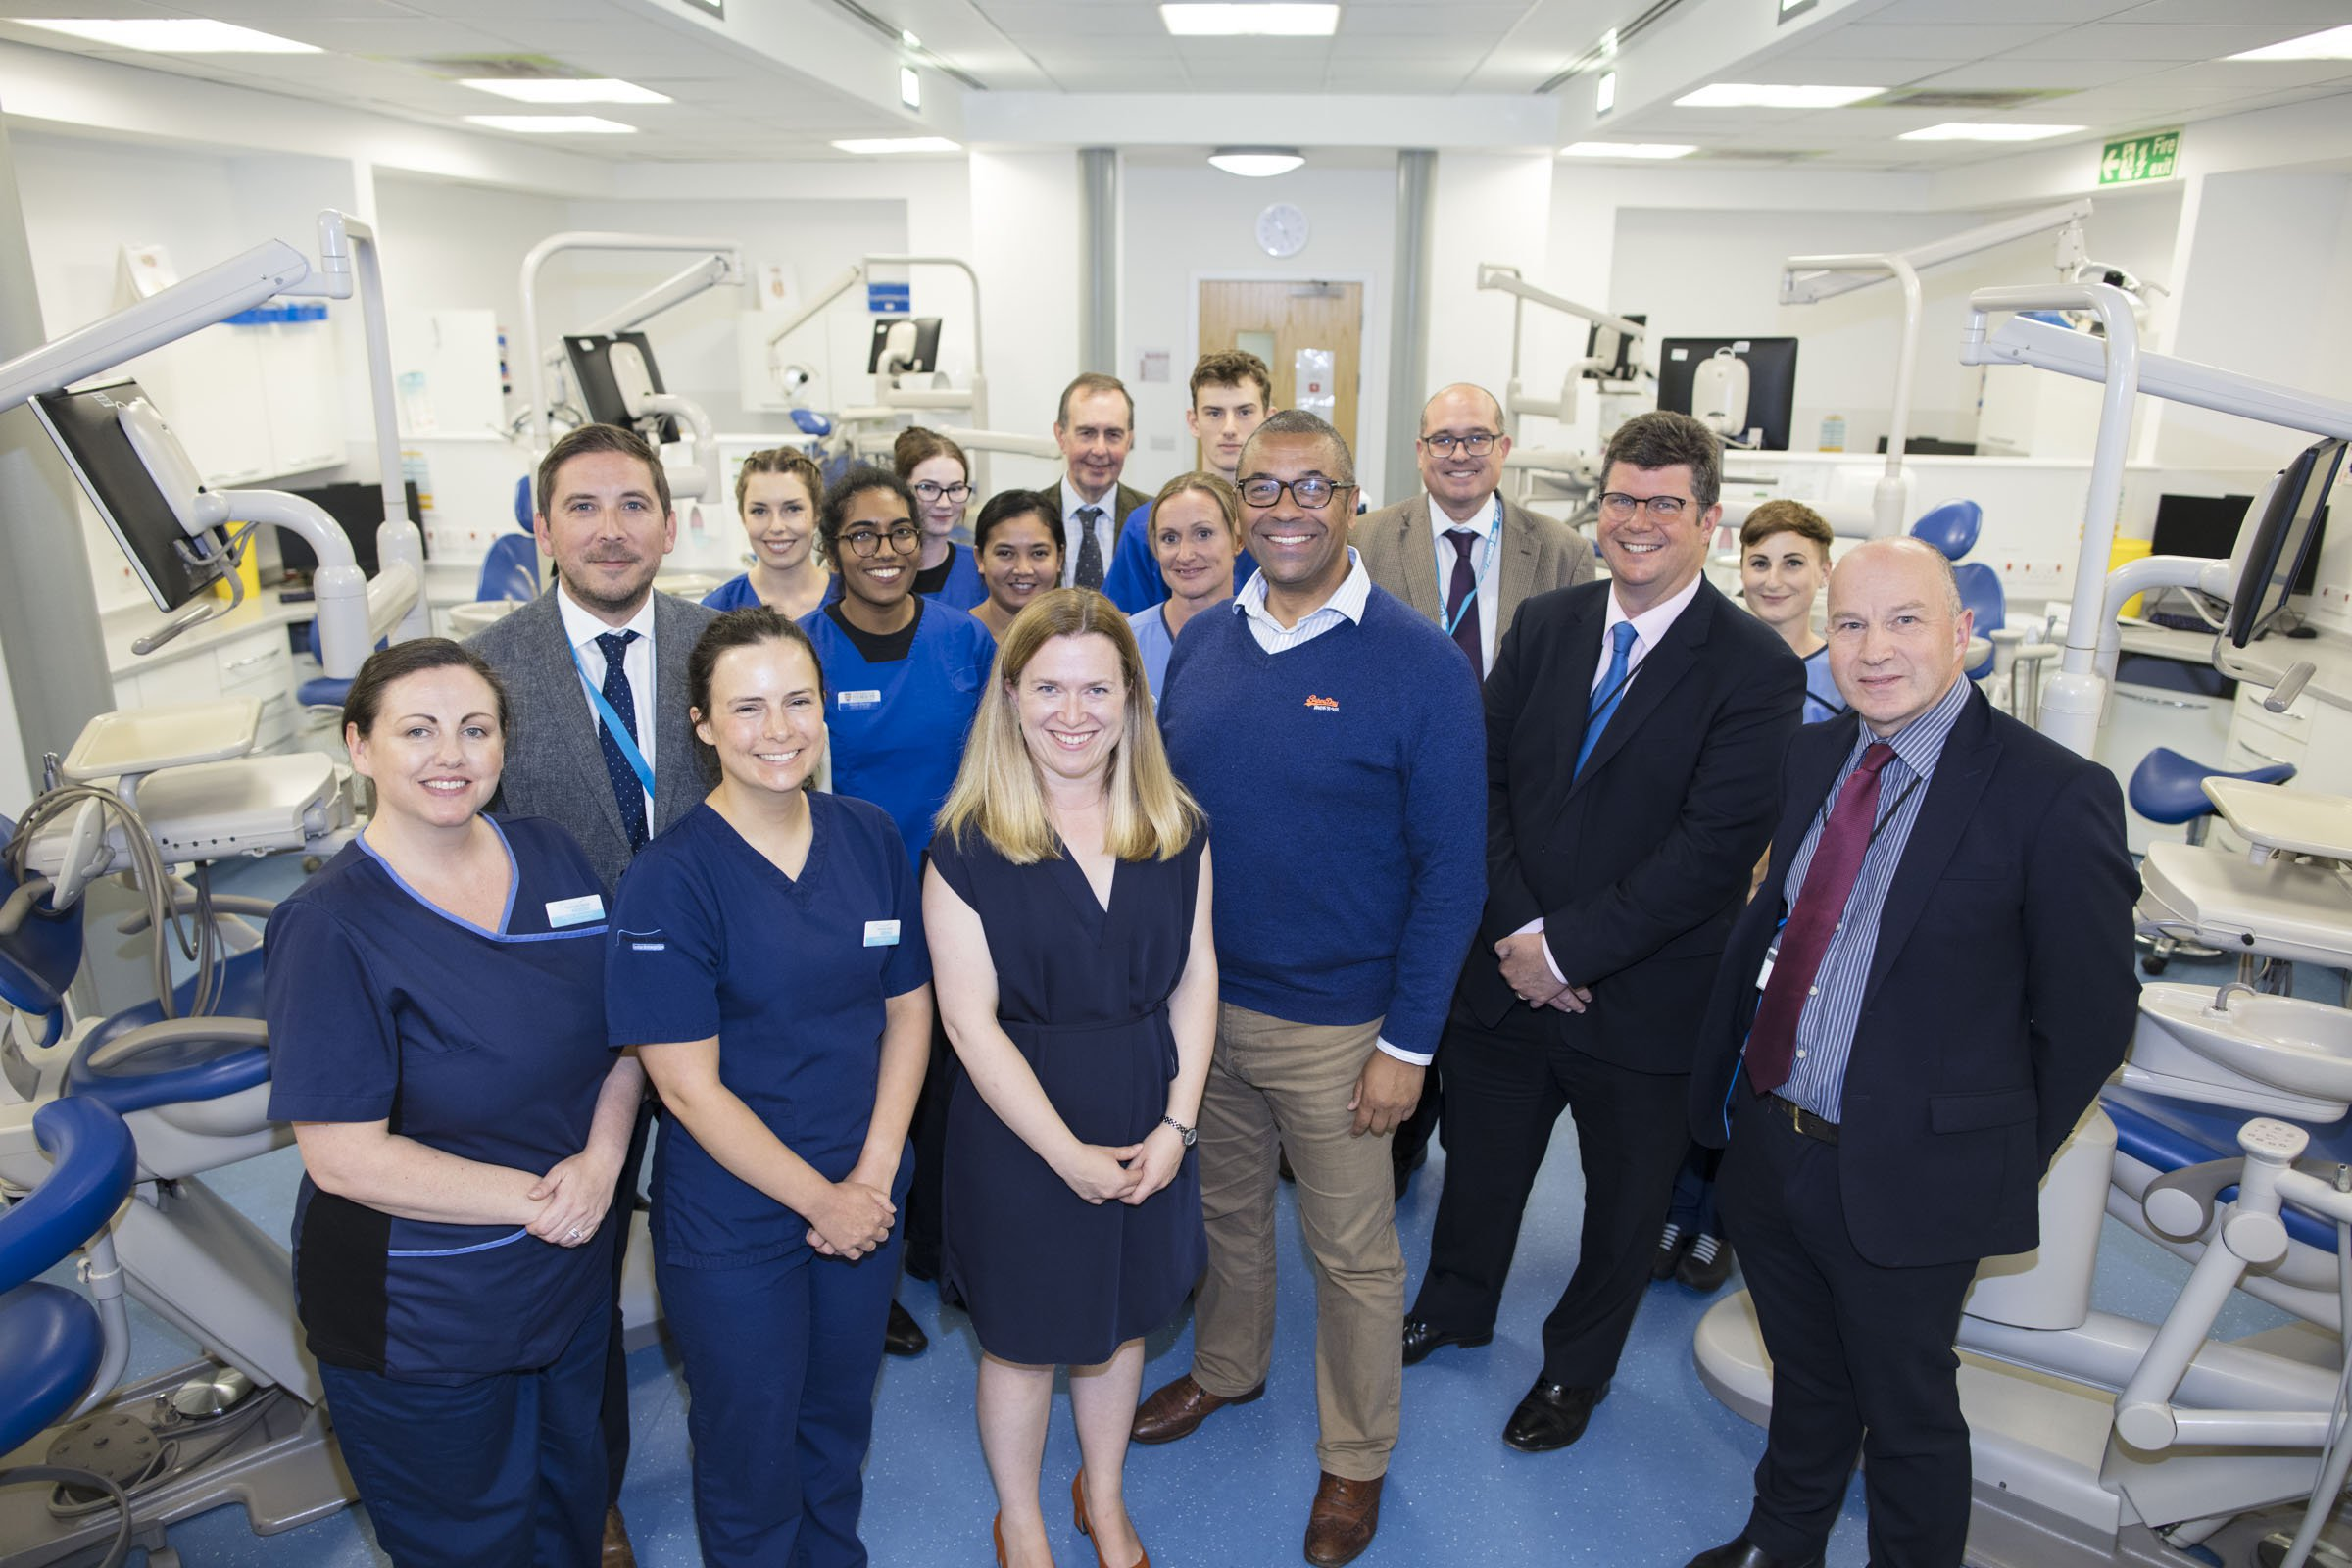 Government minister visits Plymouth University to see pioneering community dentistry facility